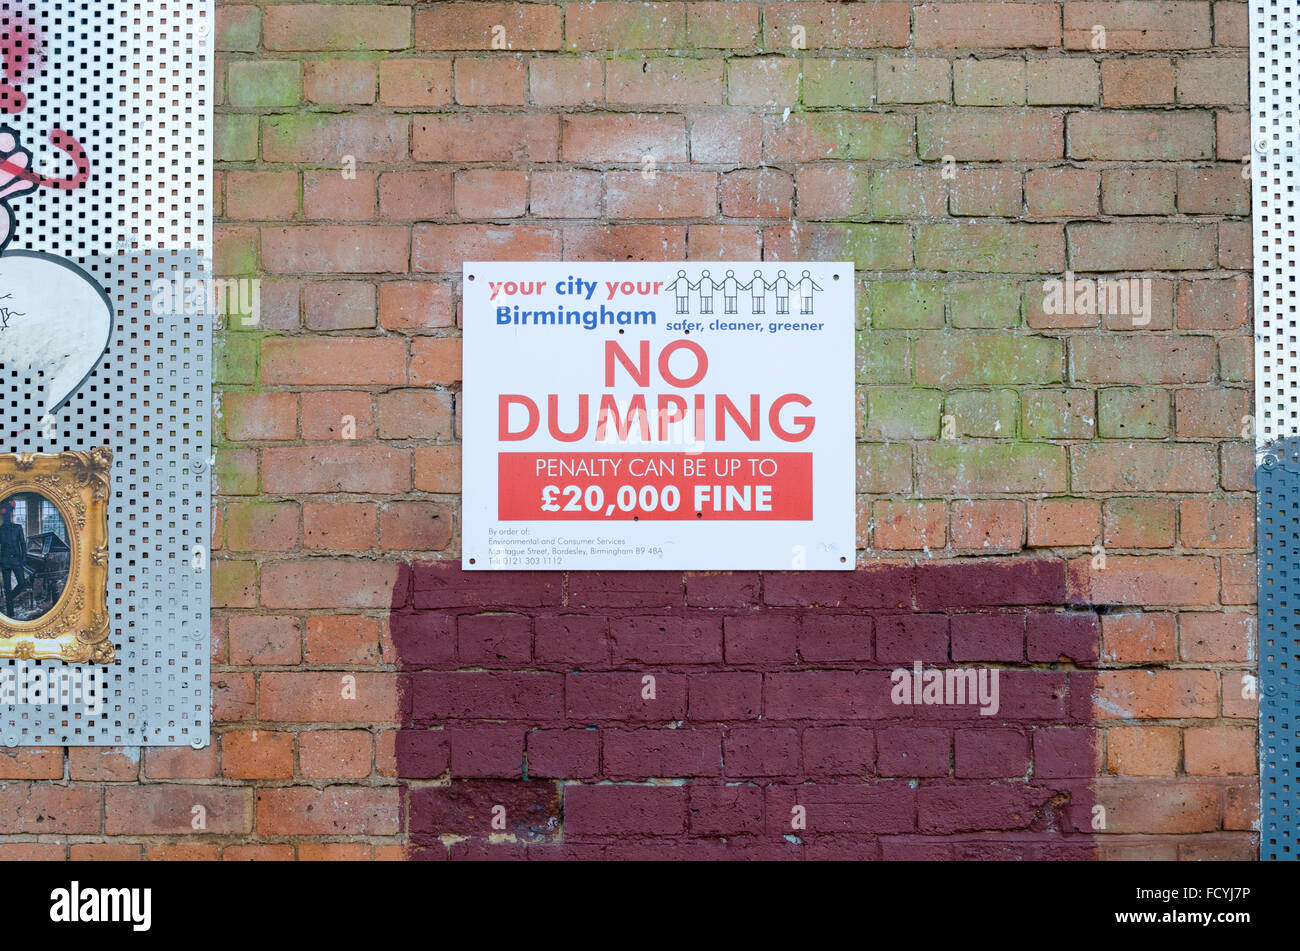 No Dumping sign issued by Birmingham City Council - Stock Image